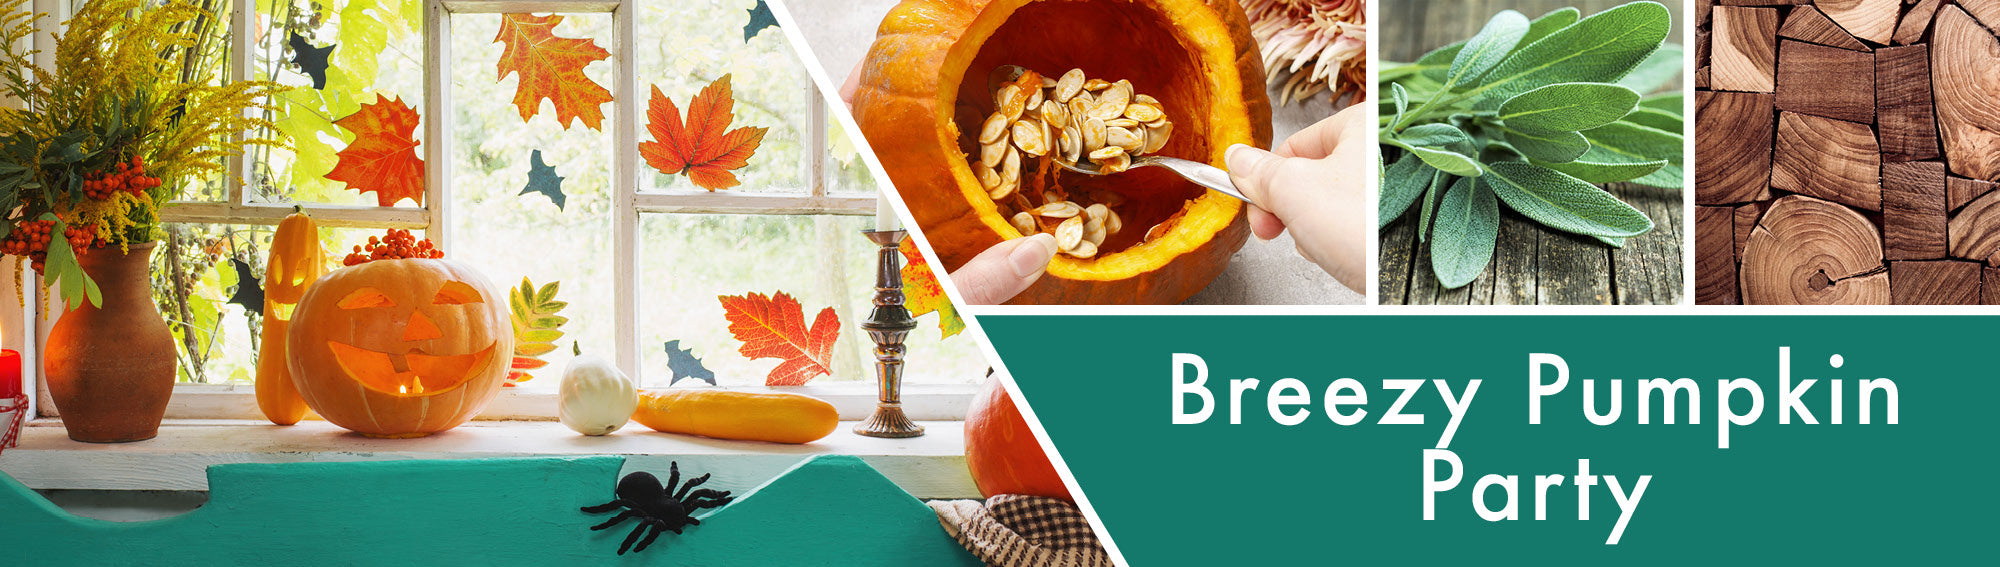 Breezy Pumpkin Party Fragrance